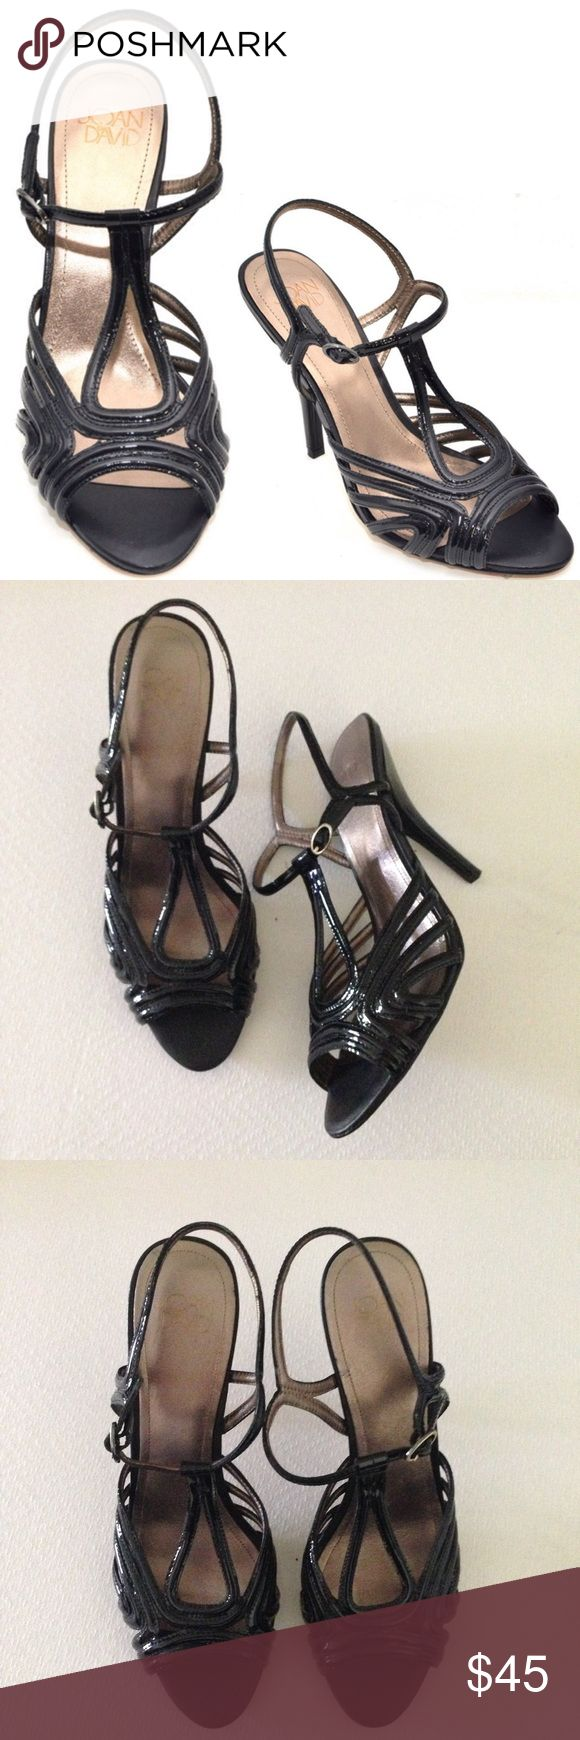 """Joan & David Black Strappy Heels Sandals - Damimo Joan & David Black Strappy Heels. Vintage Vibe, 4.5"""" Heel, Side Buckle Strapping, patent Leather, Damimo. Excellent Pre-Worn Condition. No Visible Stains, Fading or Minor Flaws please see pictures. Retail $240.00 #0204172612 ✨Please keep in mind that measurements are provided only as a guide and are approximate. Color appearance may vary depending on your monitor settings. Joan & David Shoes Heels"""